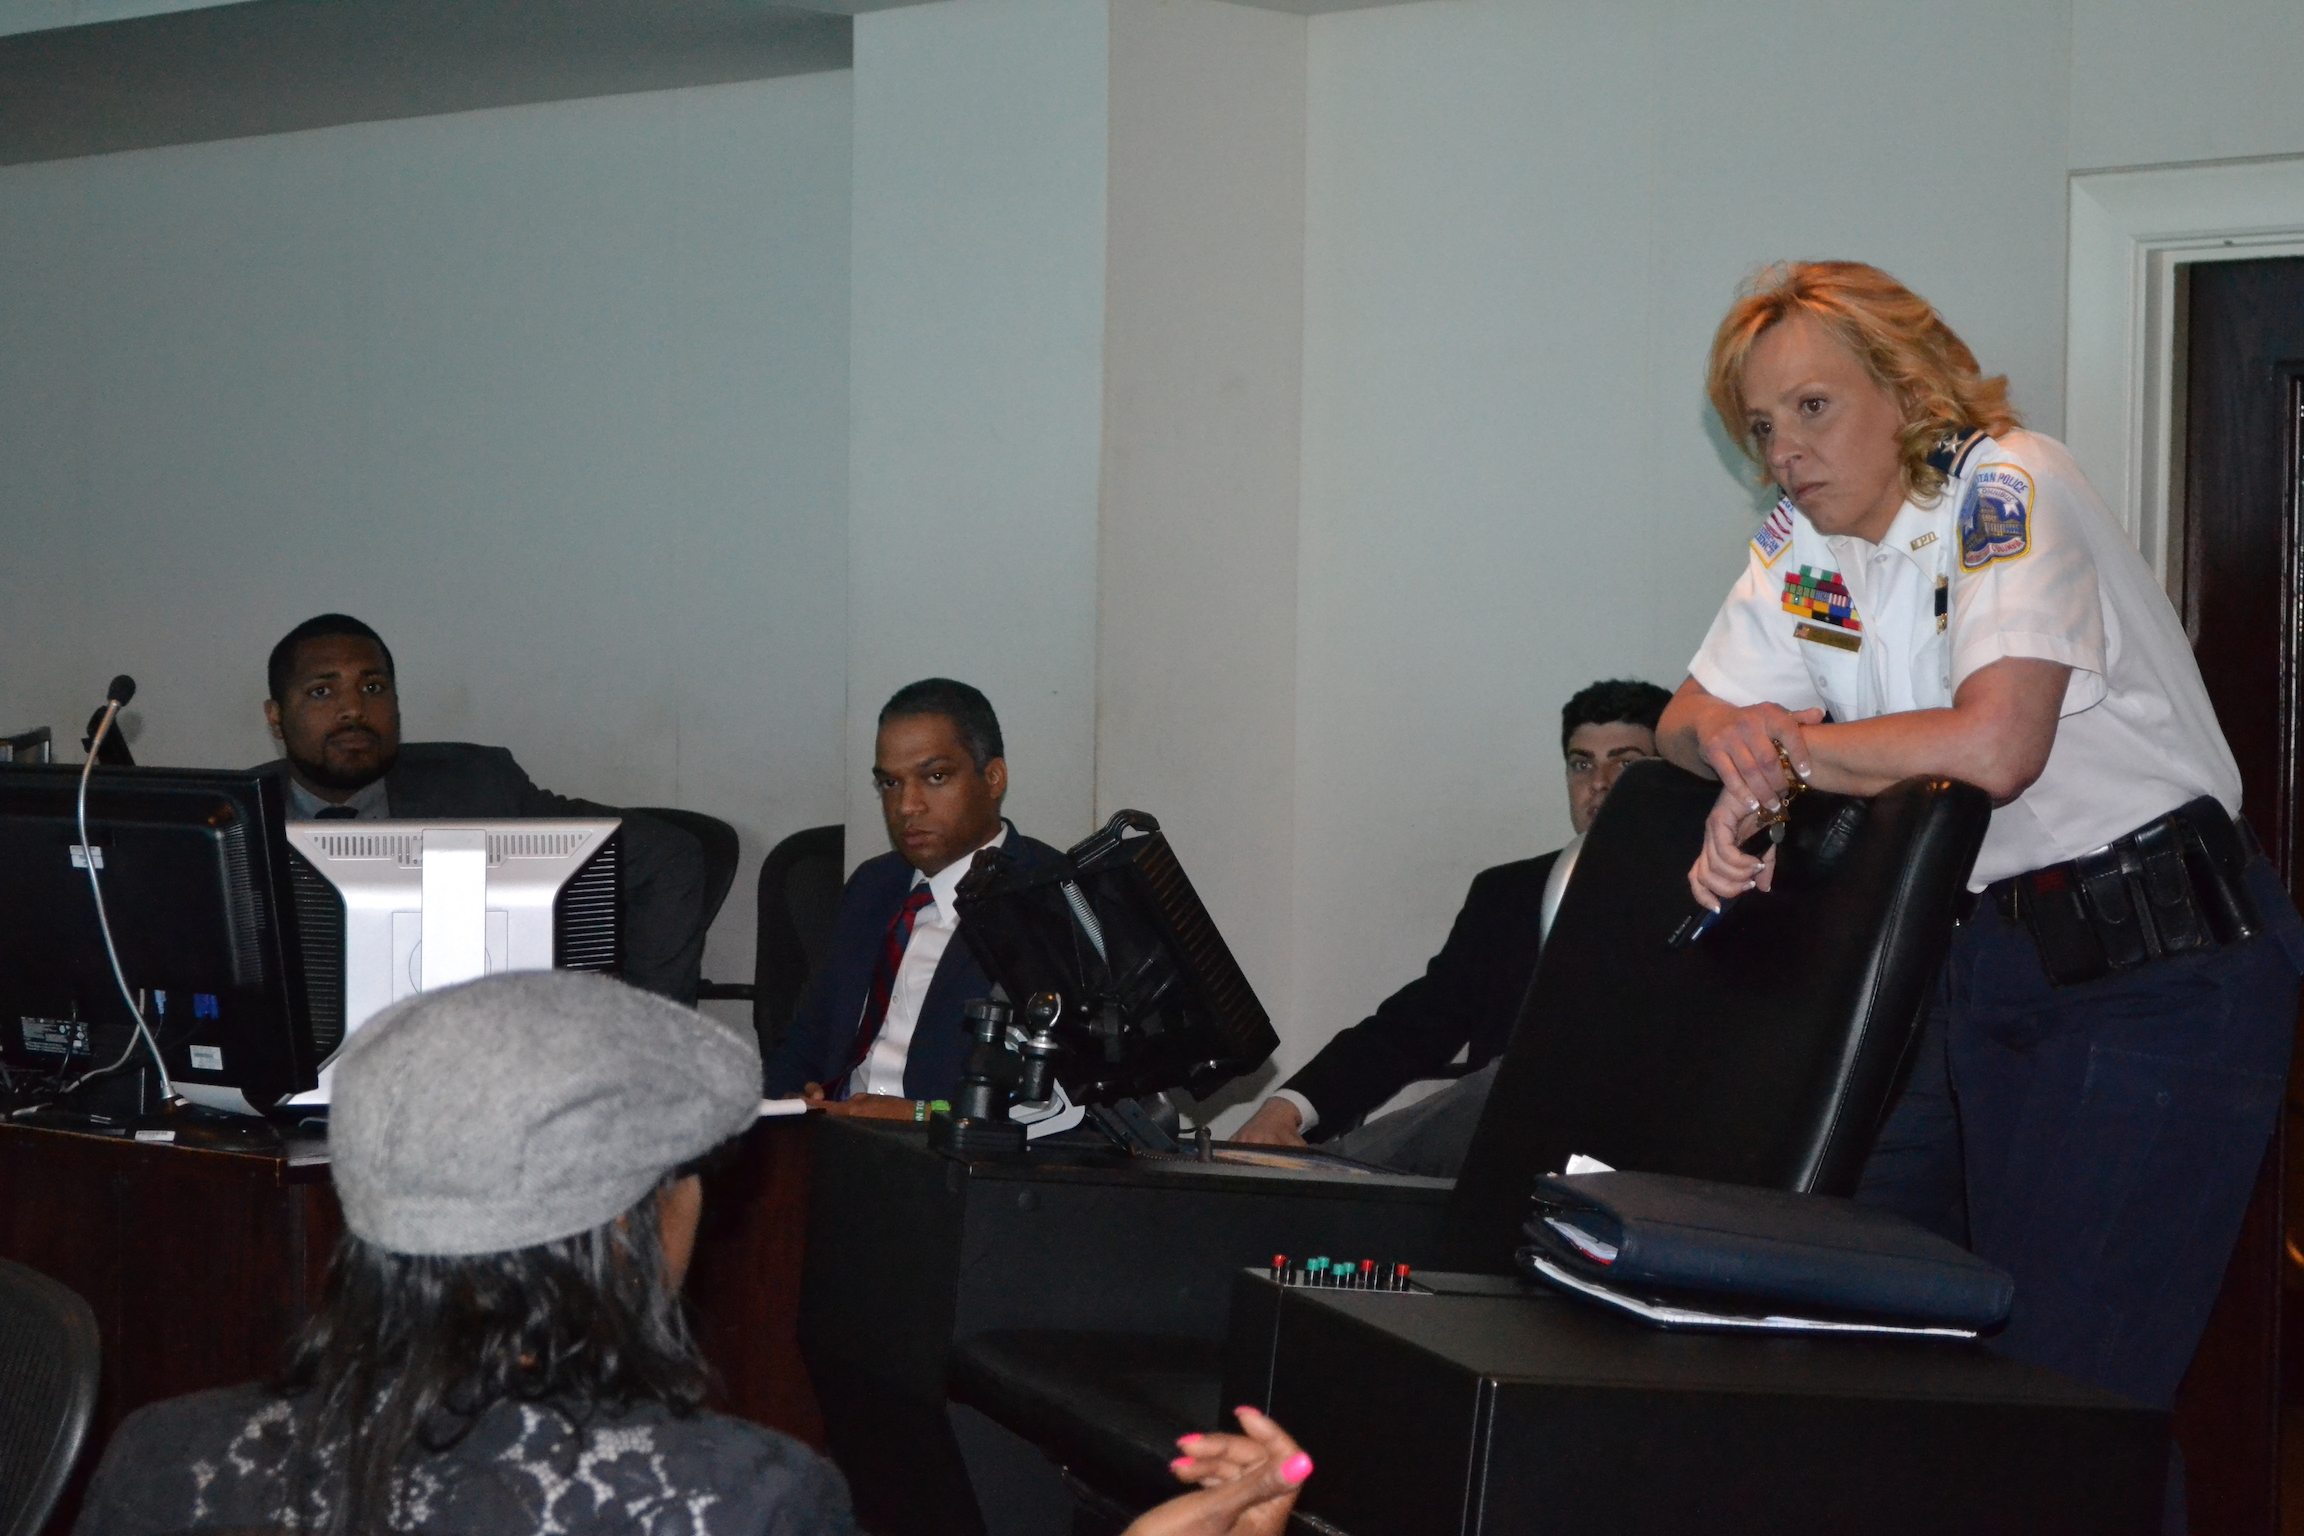 Chief Cathy Lanier listening to a resident. Far left is Gregory Jackson, director of the Mayor's Office of Community Relations, and Councilmember-Elect Brandon Todd.